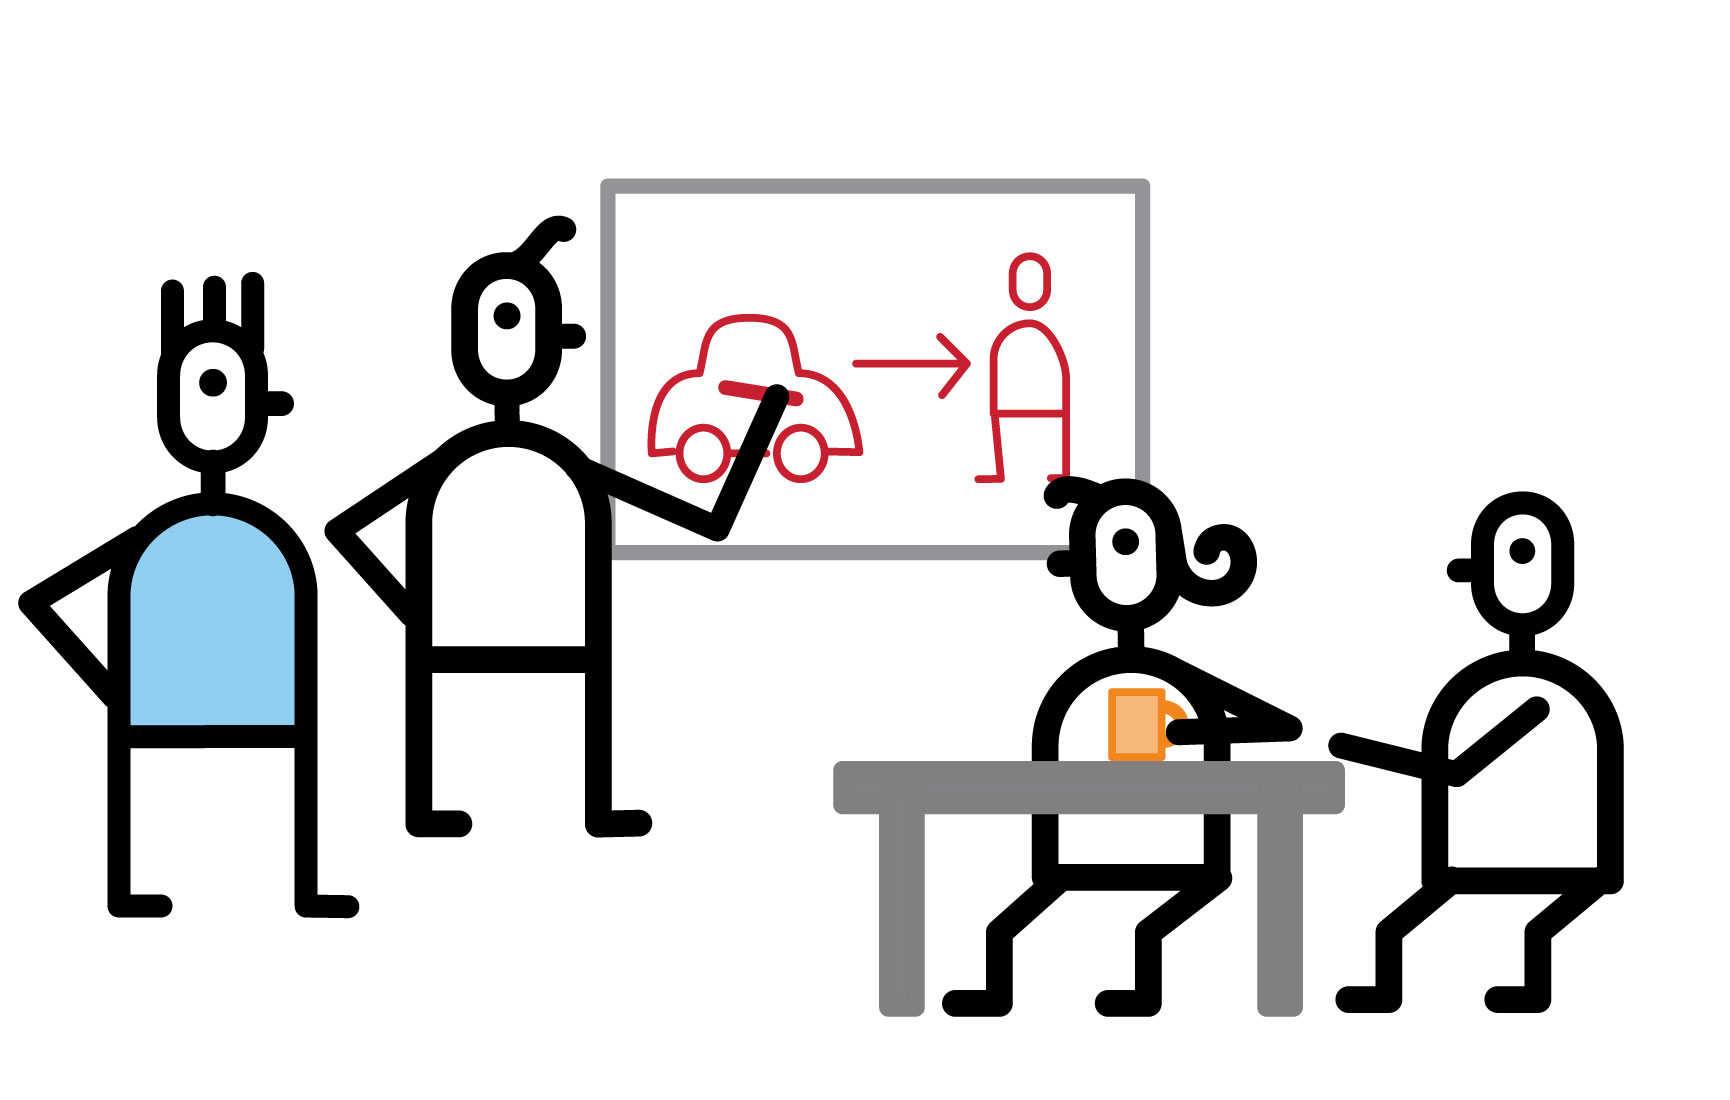 Bringing visual thinking into your meetings